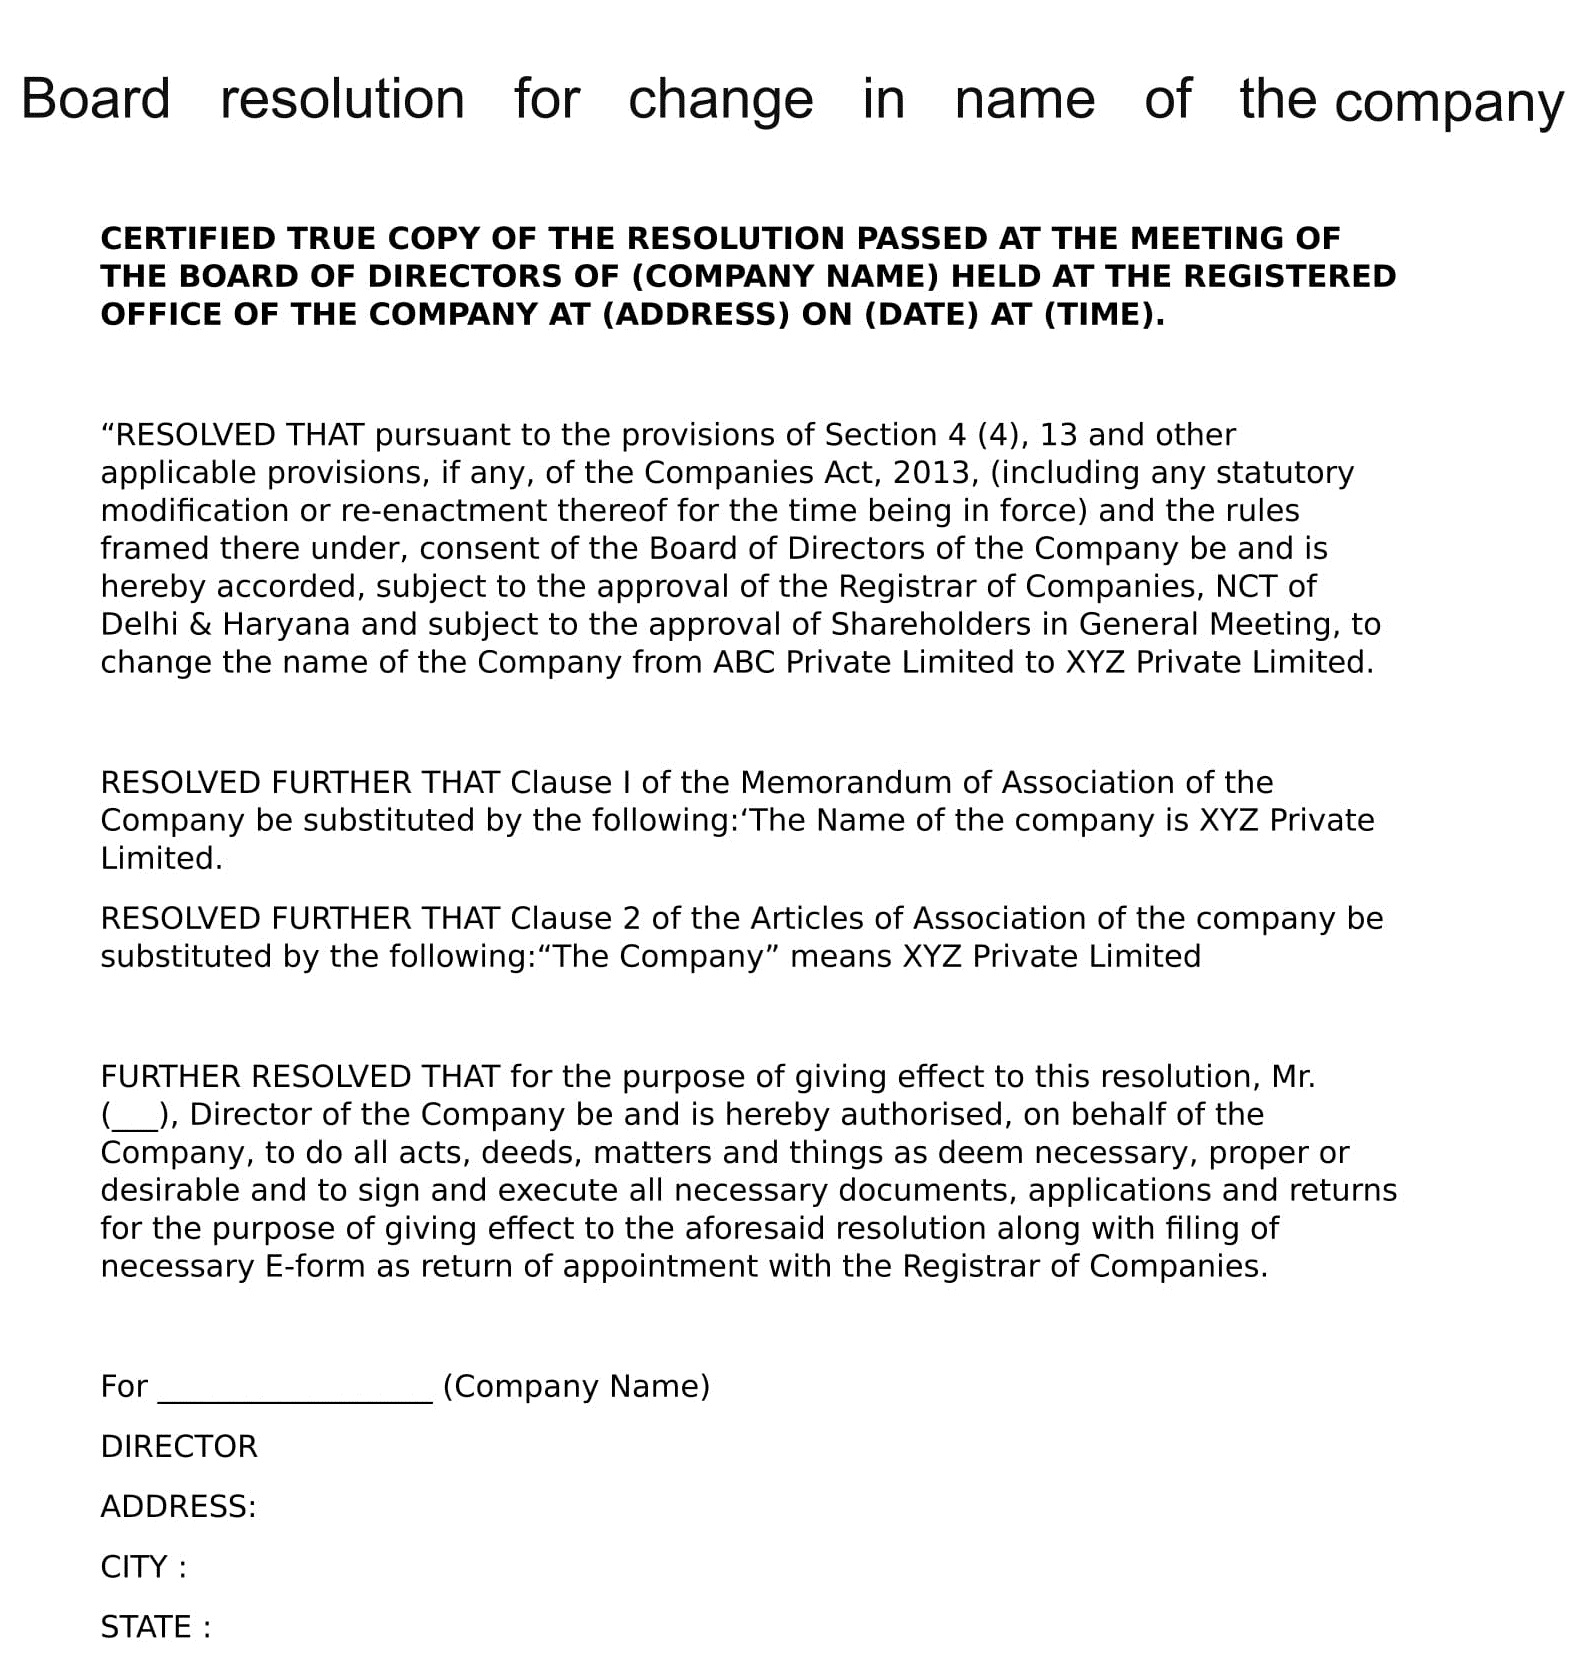 Board resolution for change in name of the company-1.jpg